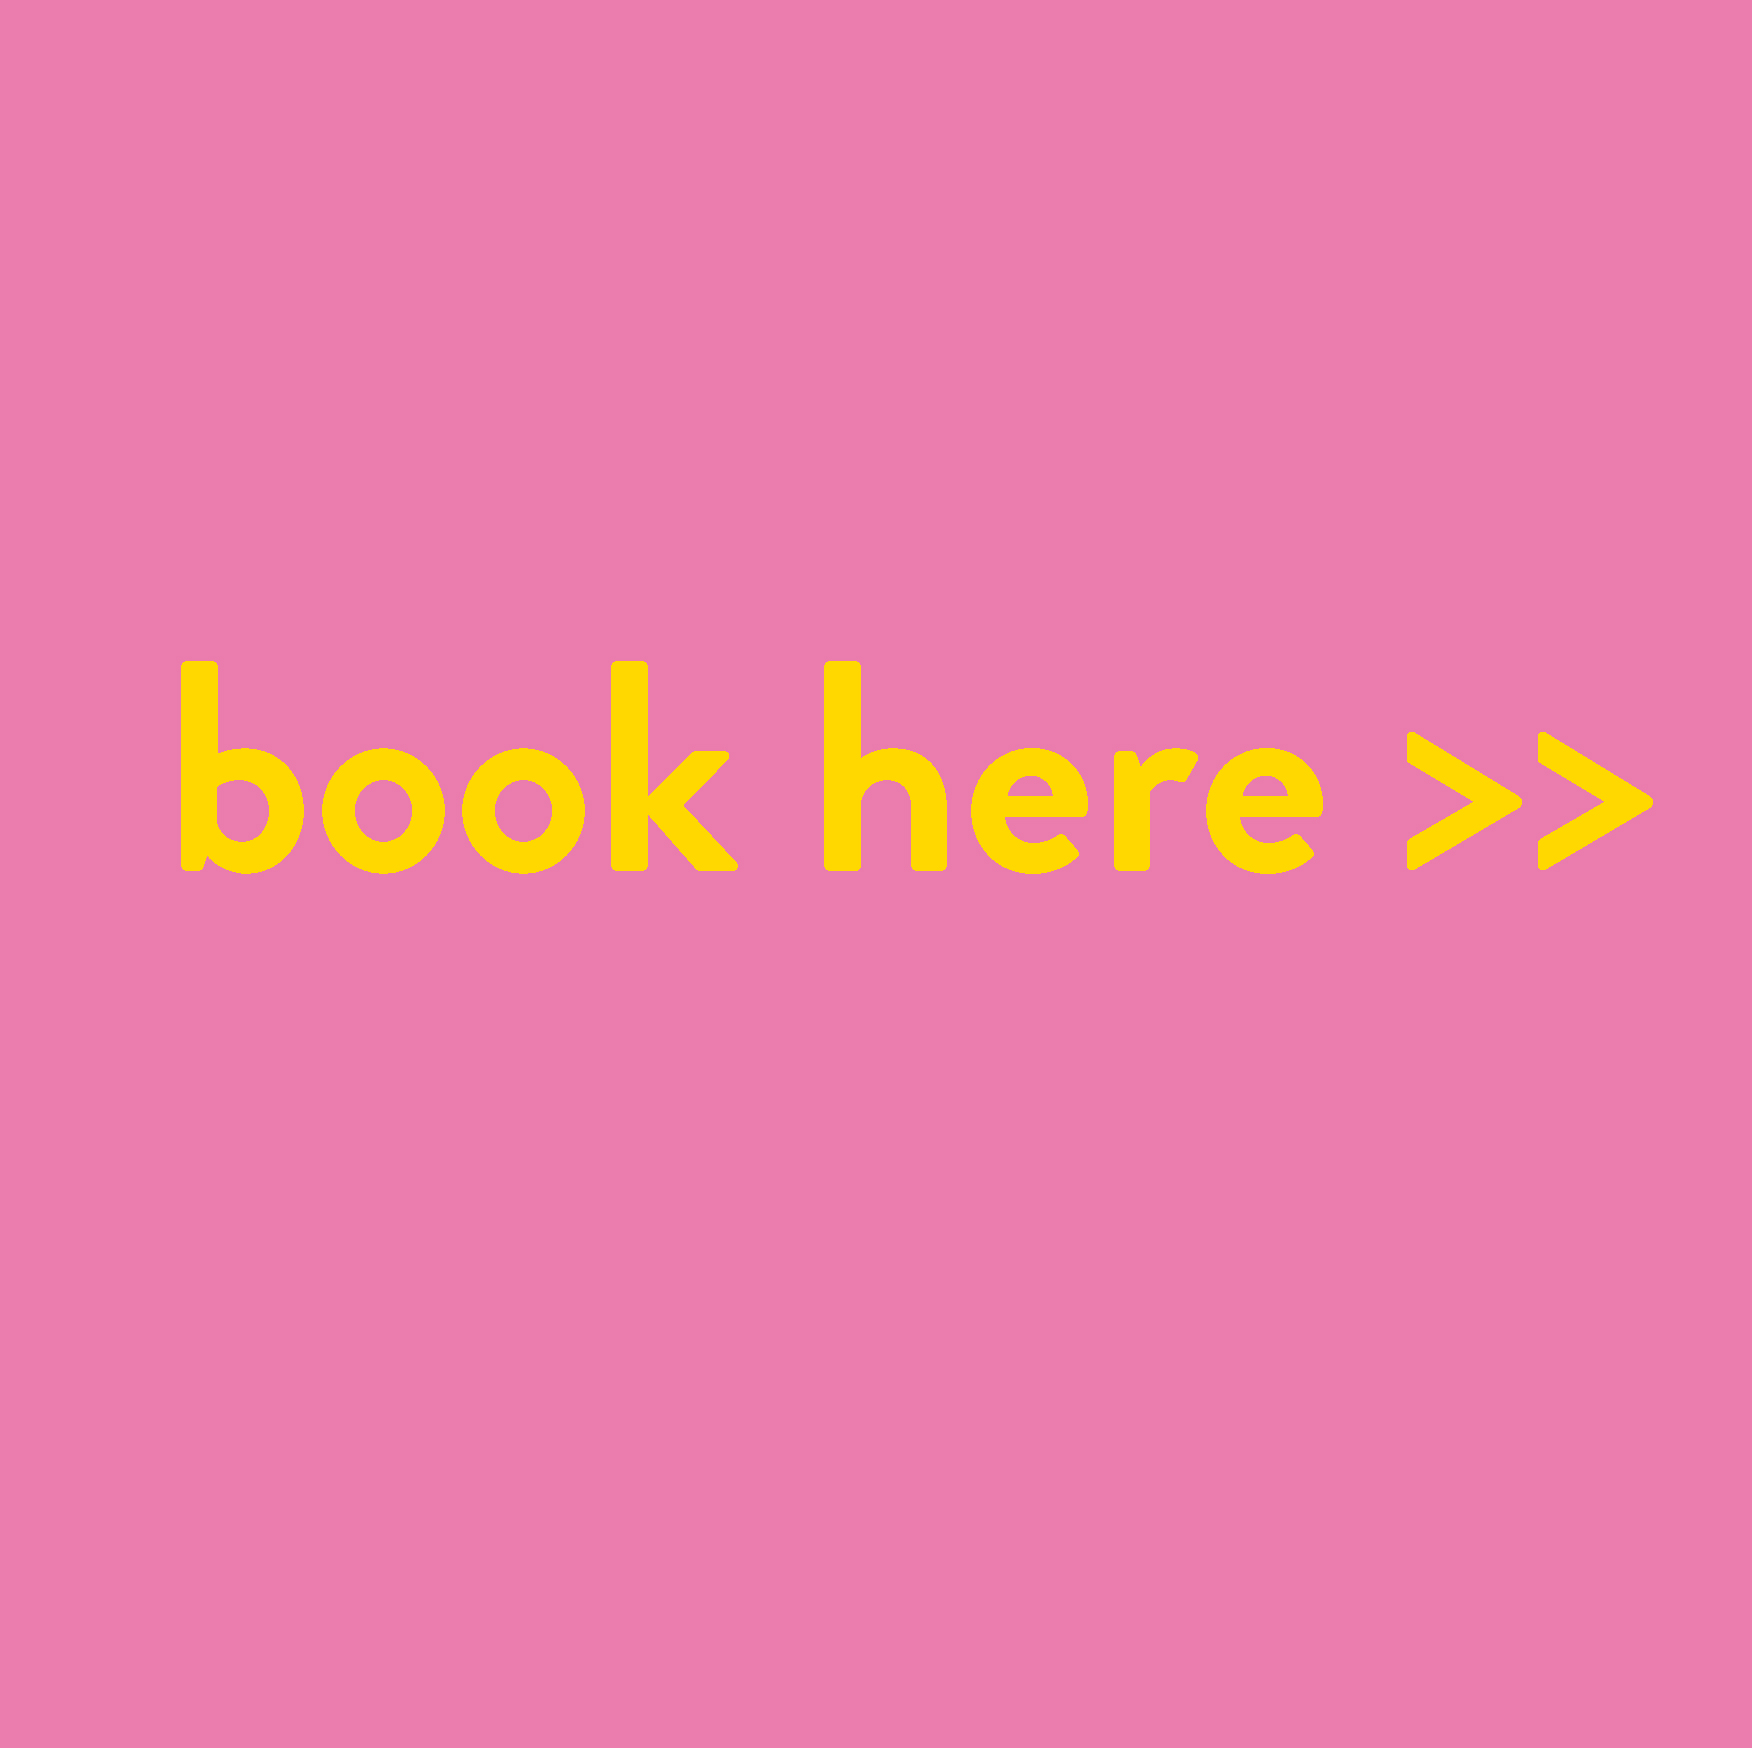 Image saying 'Book here>>